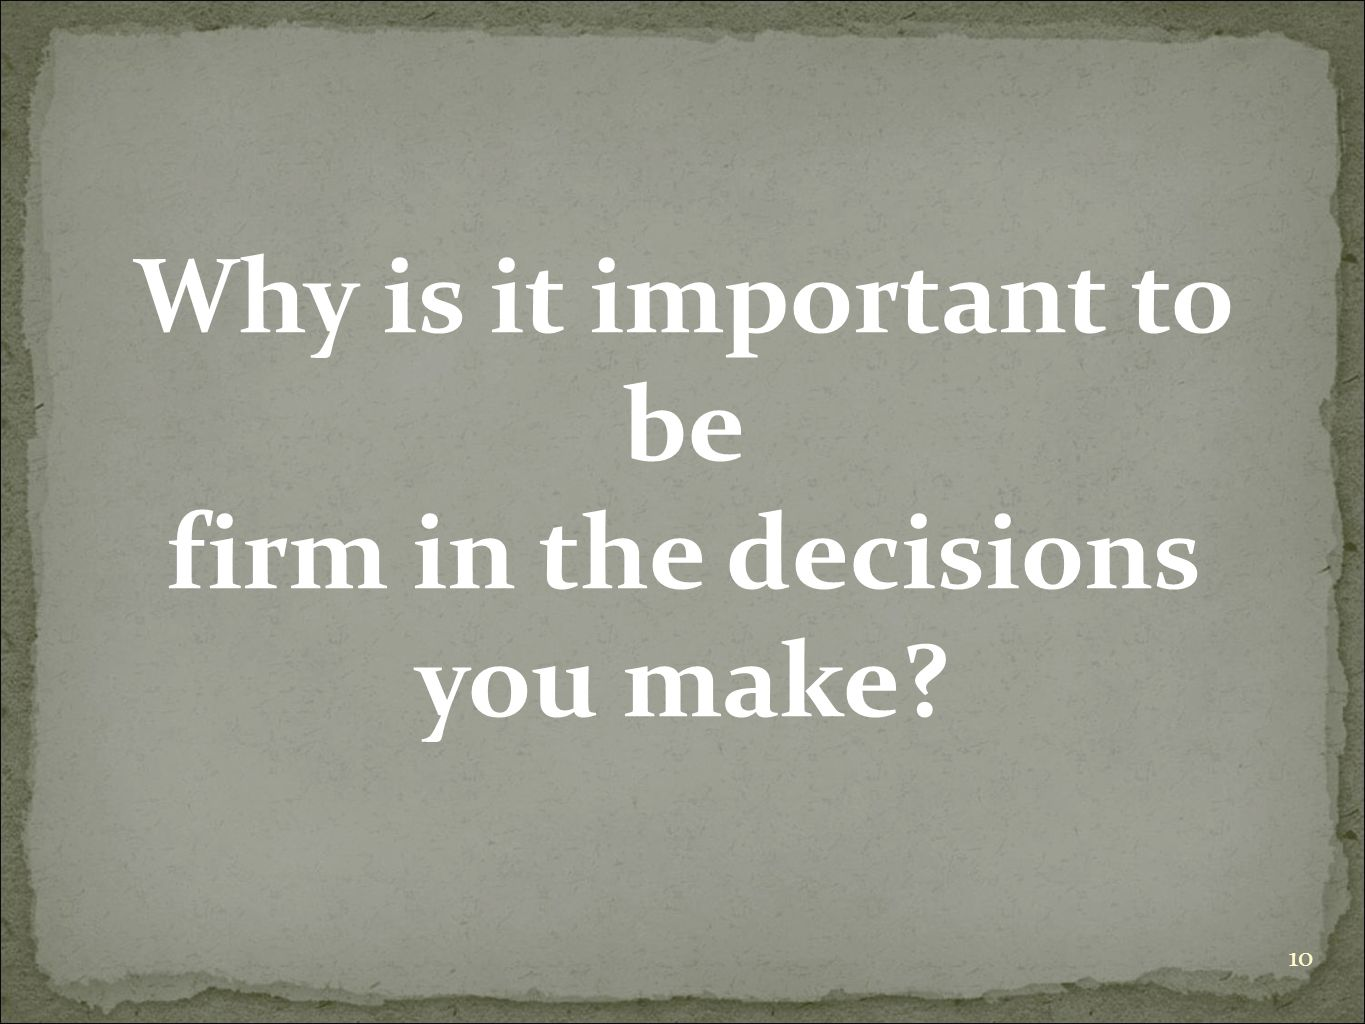 10 Why is it important to be firm in the decisions you make?